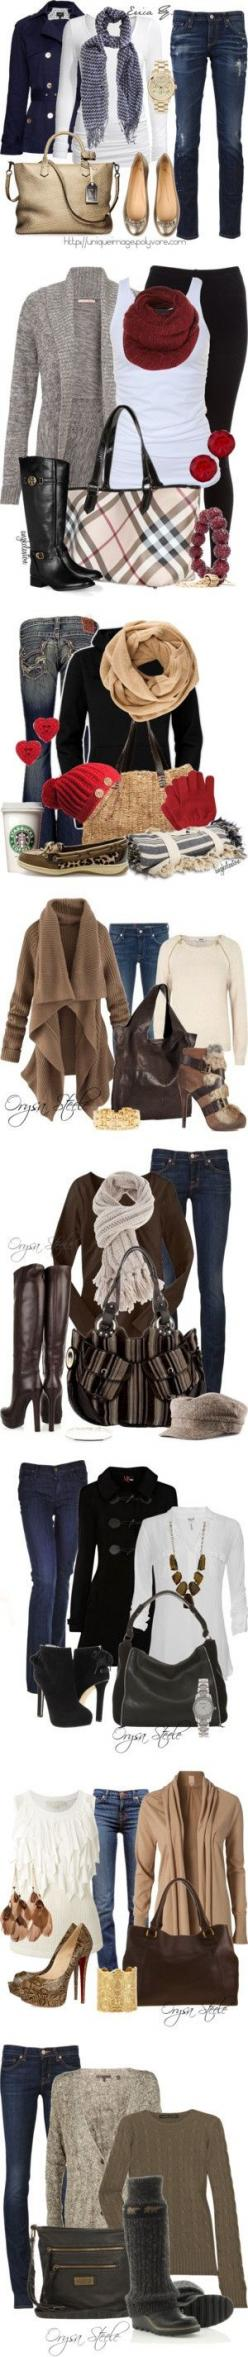 Winter time-I don't think I've pinned this yet, but really...is a Starbucks cup seriously considered an accessory? If so, THAT part of the outfit I can afford!!!: Fashion, Outfit Ideas, Winter Style, Cute Outfits, Cold Weather Outfit, Fall Outfits